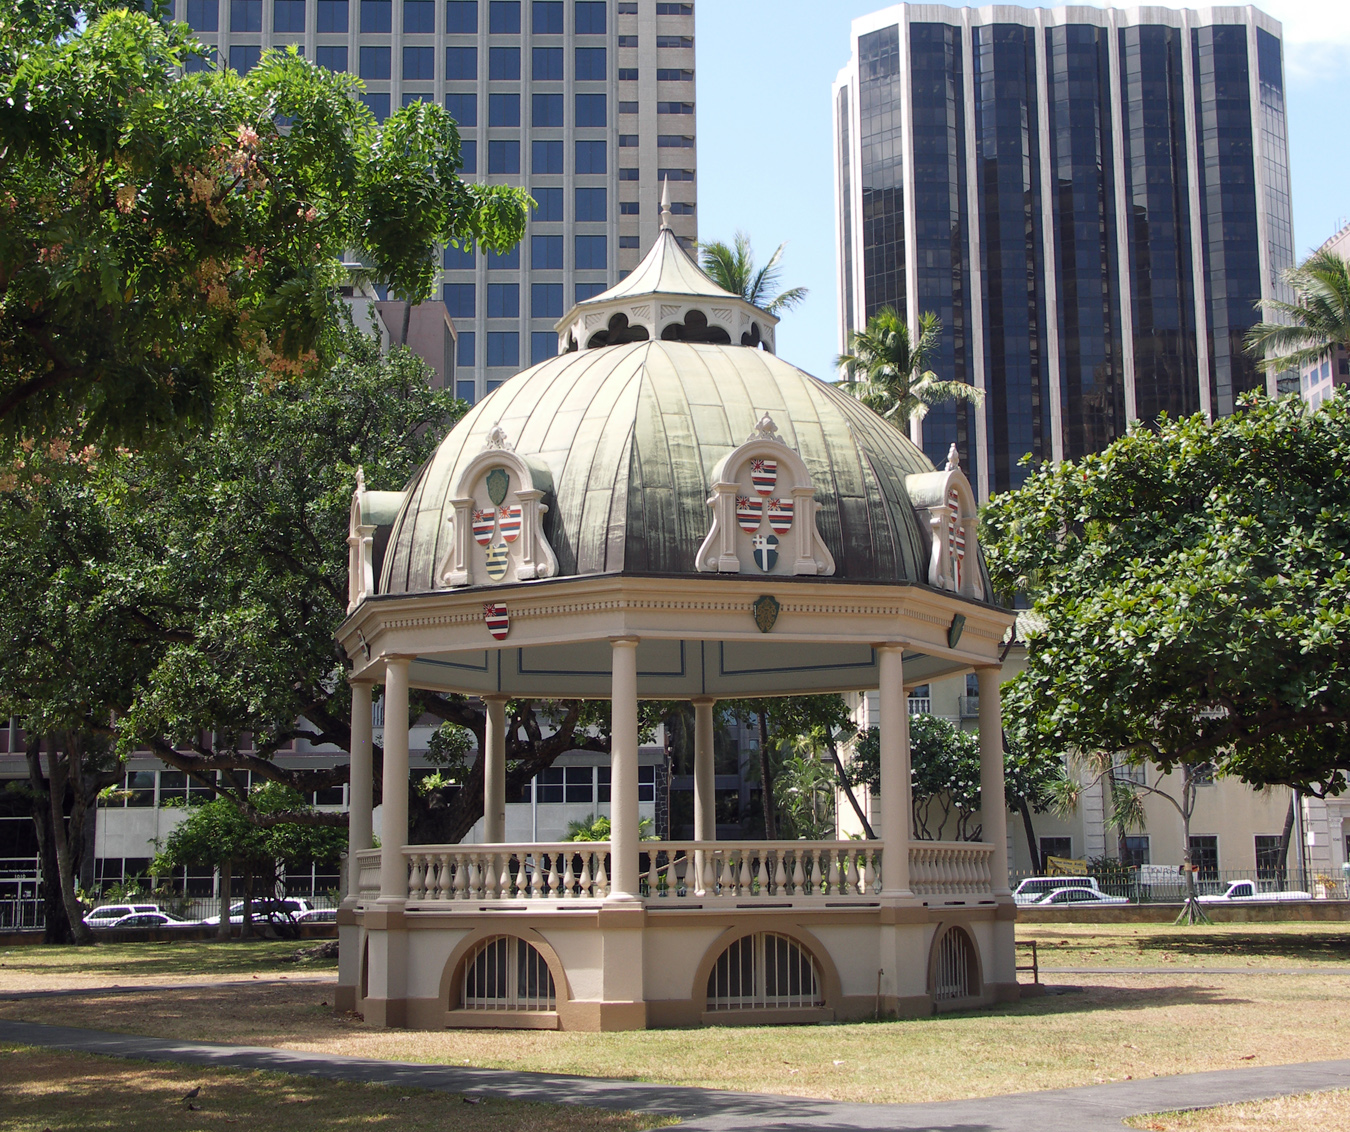 File:Iolani Palace gazebo.jpg - Wikimedia Commons